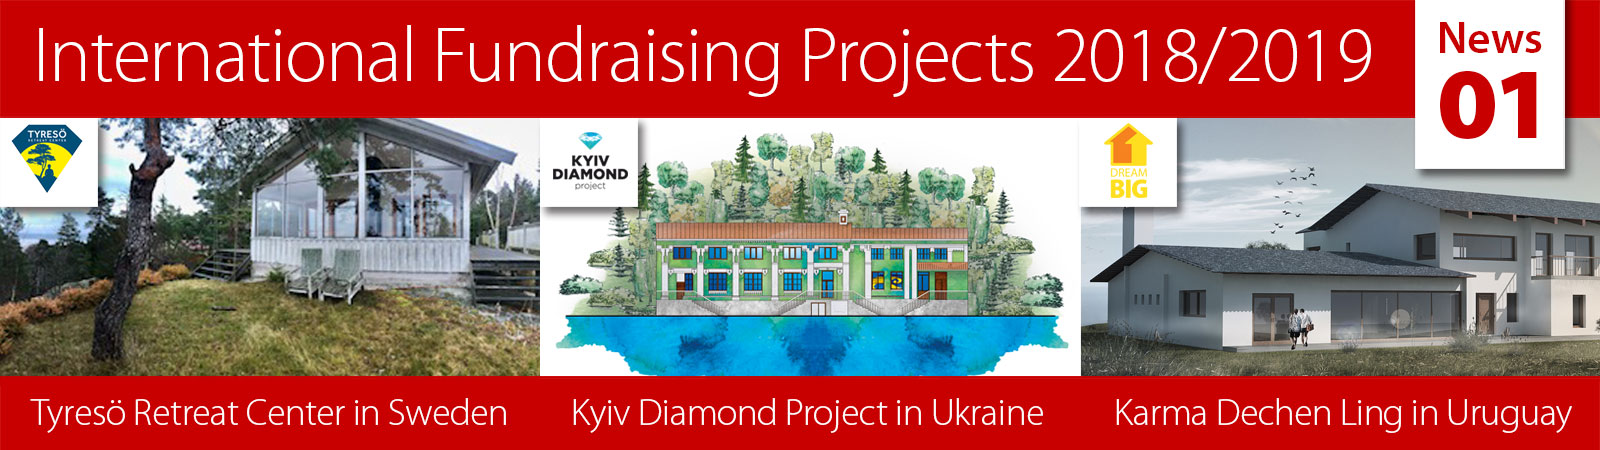 International Fundraising Projects News 01